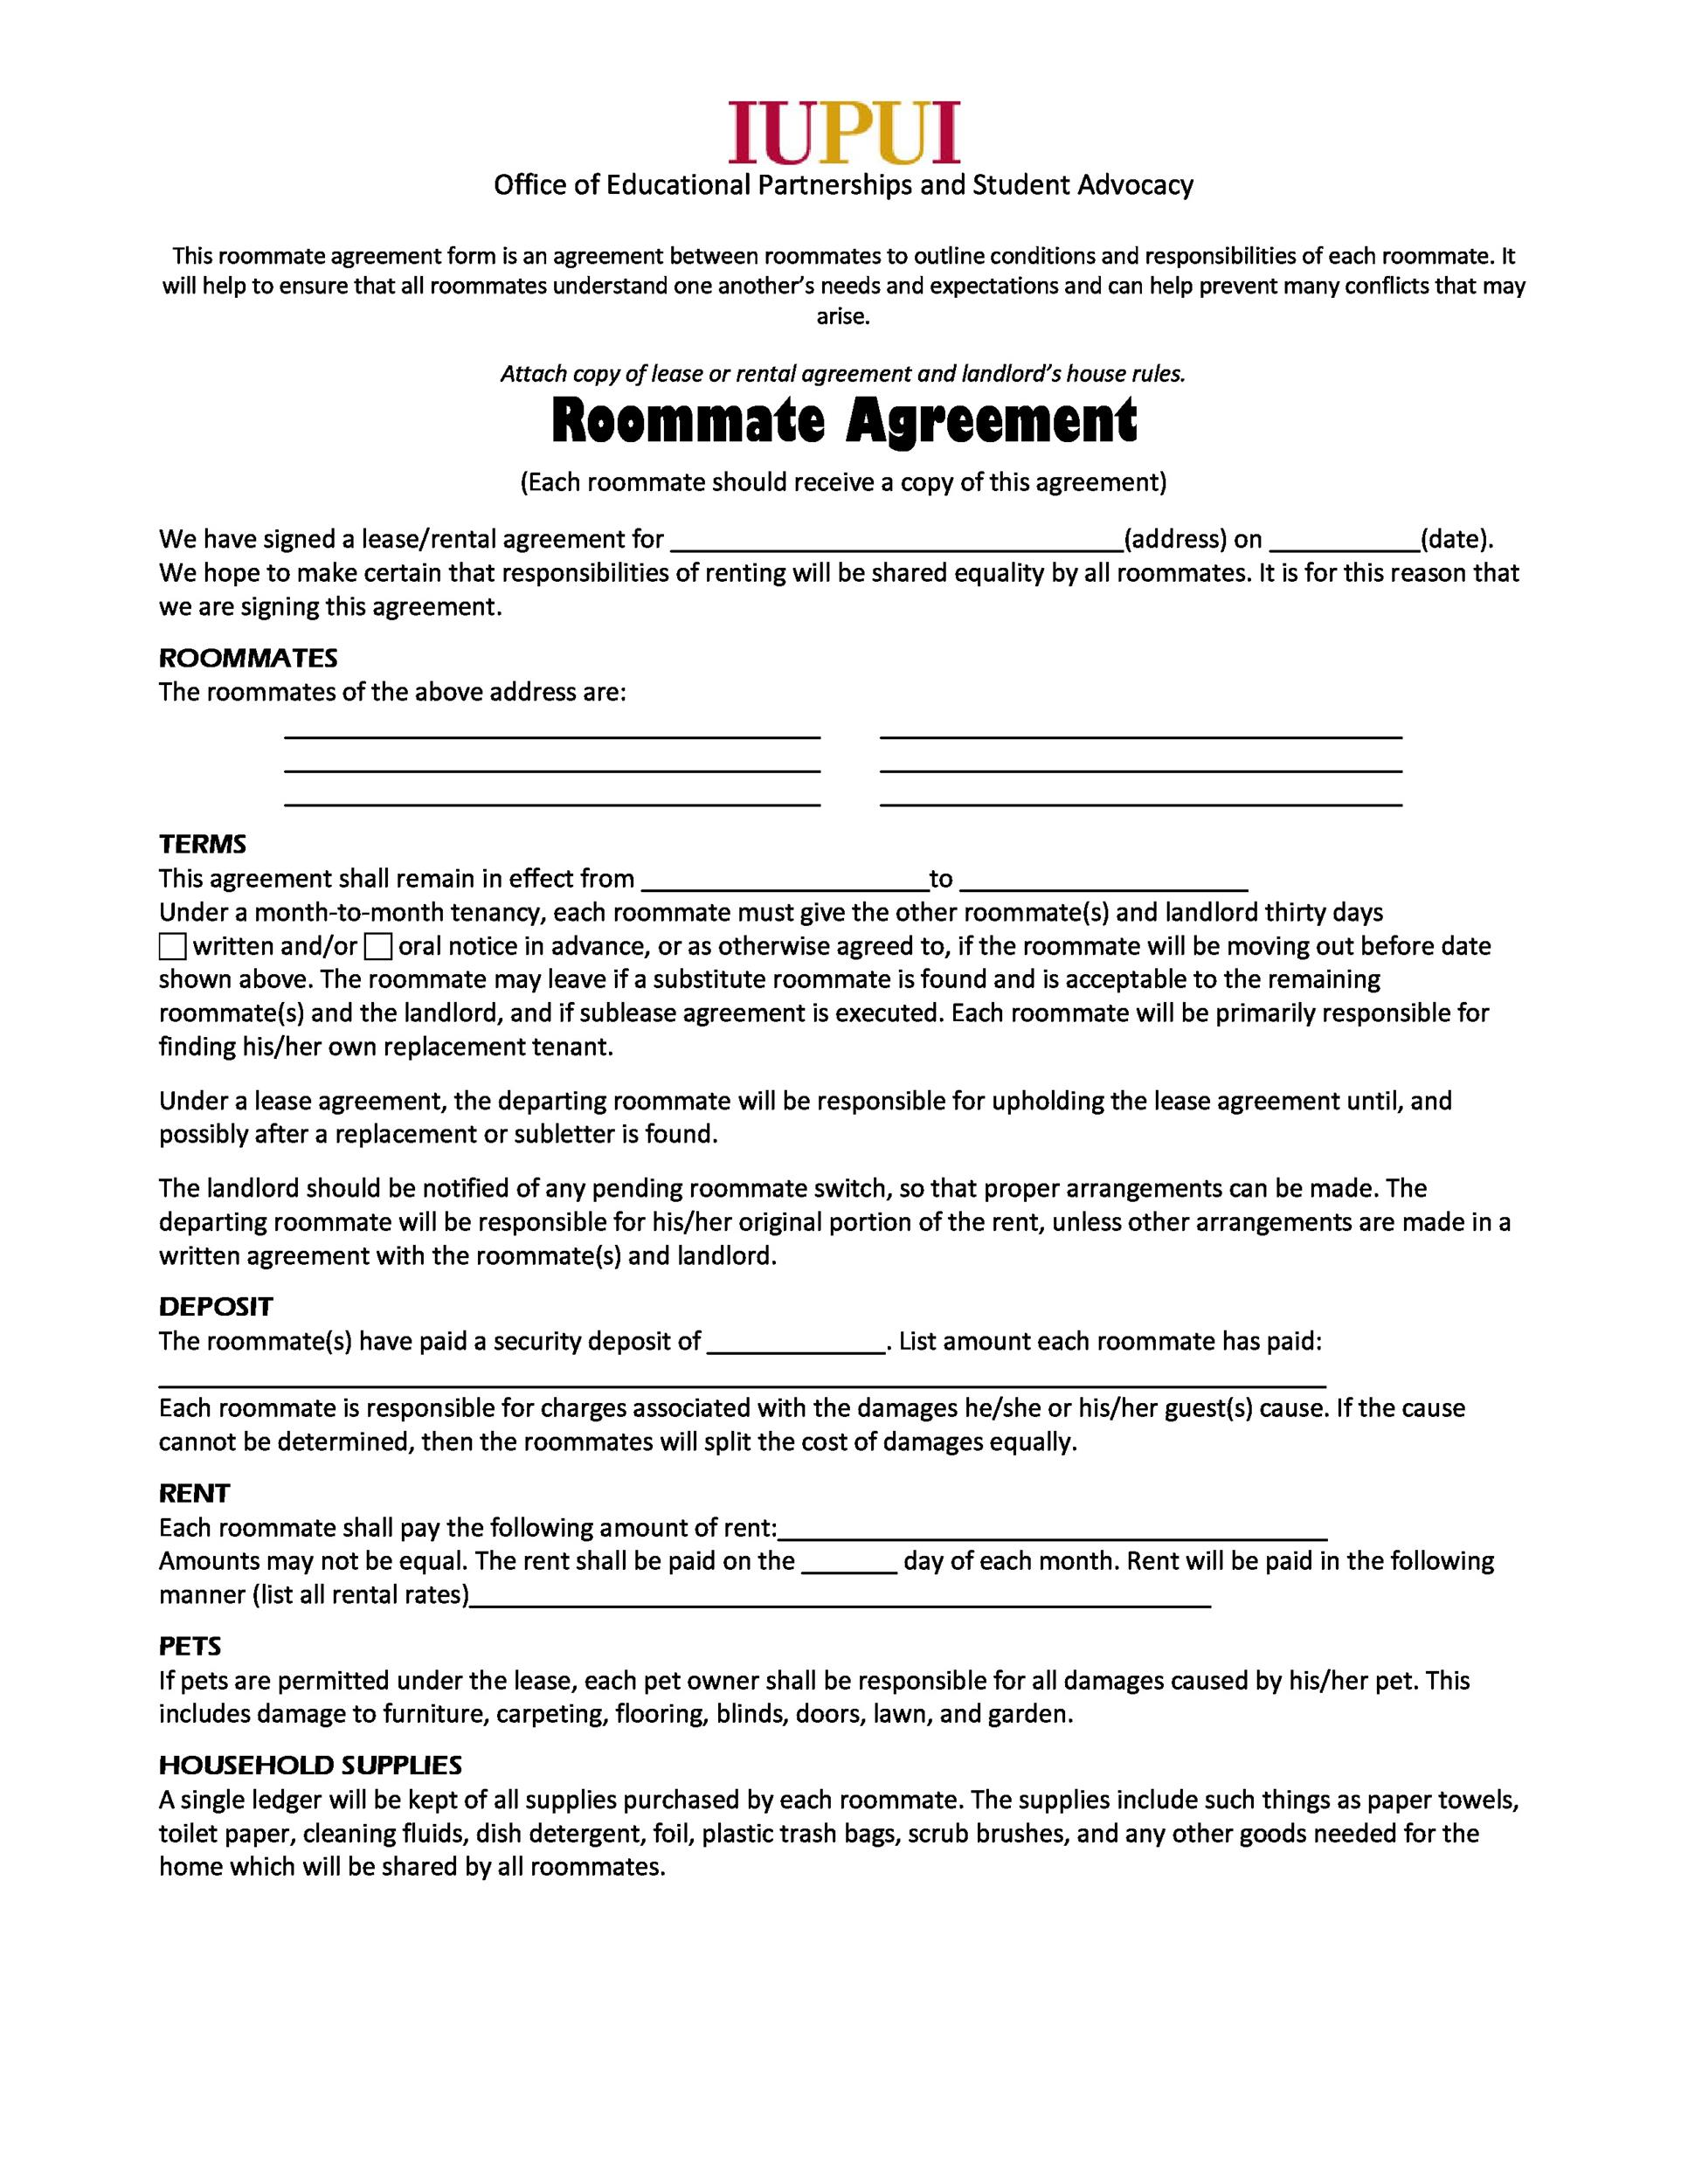 40 Free Roommate Agreement Templates Forms Word PDF – Mutual Agreement Contract Template